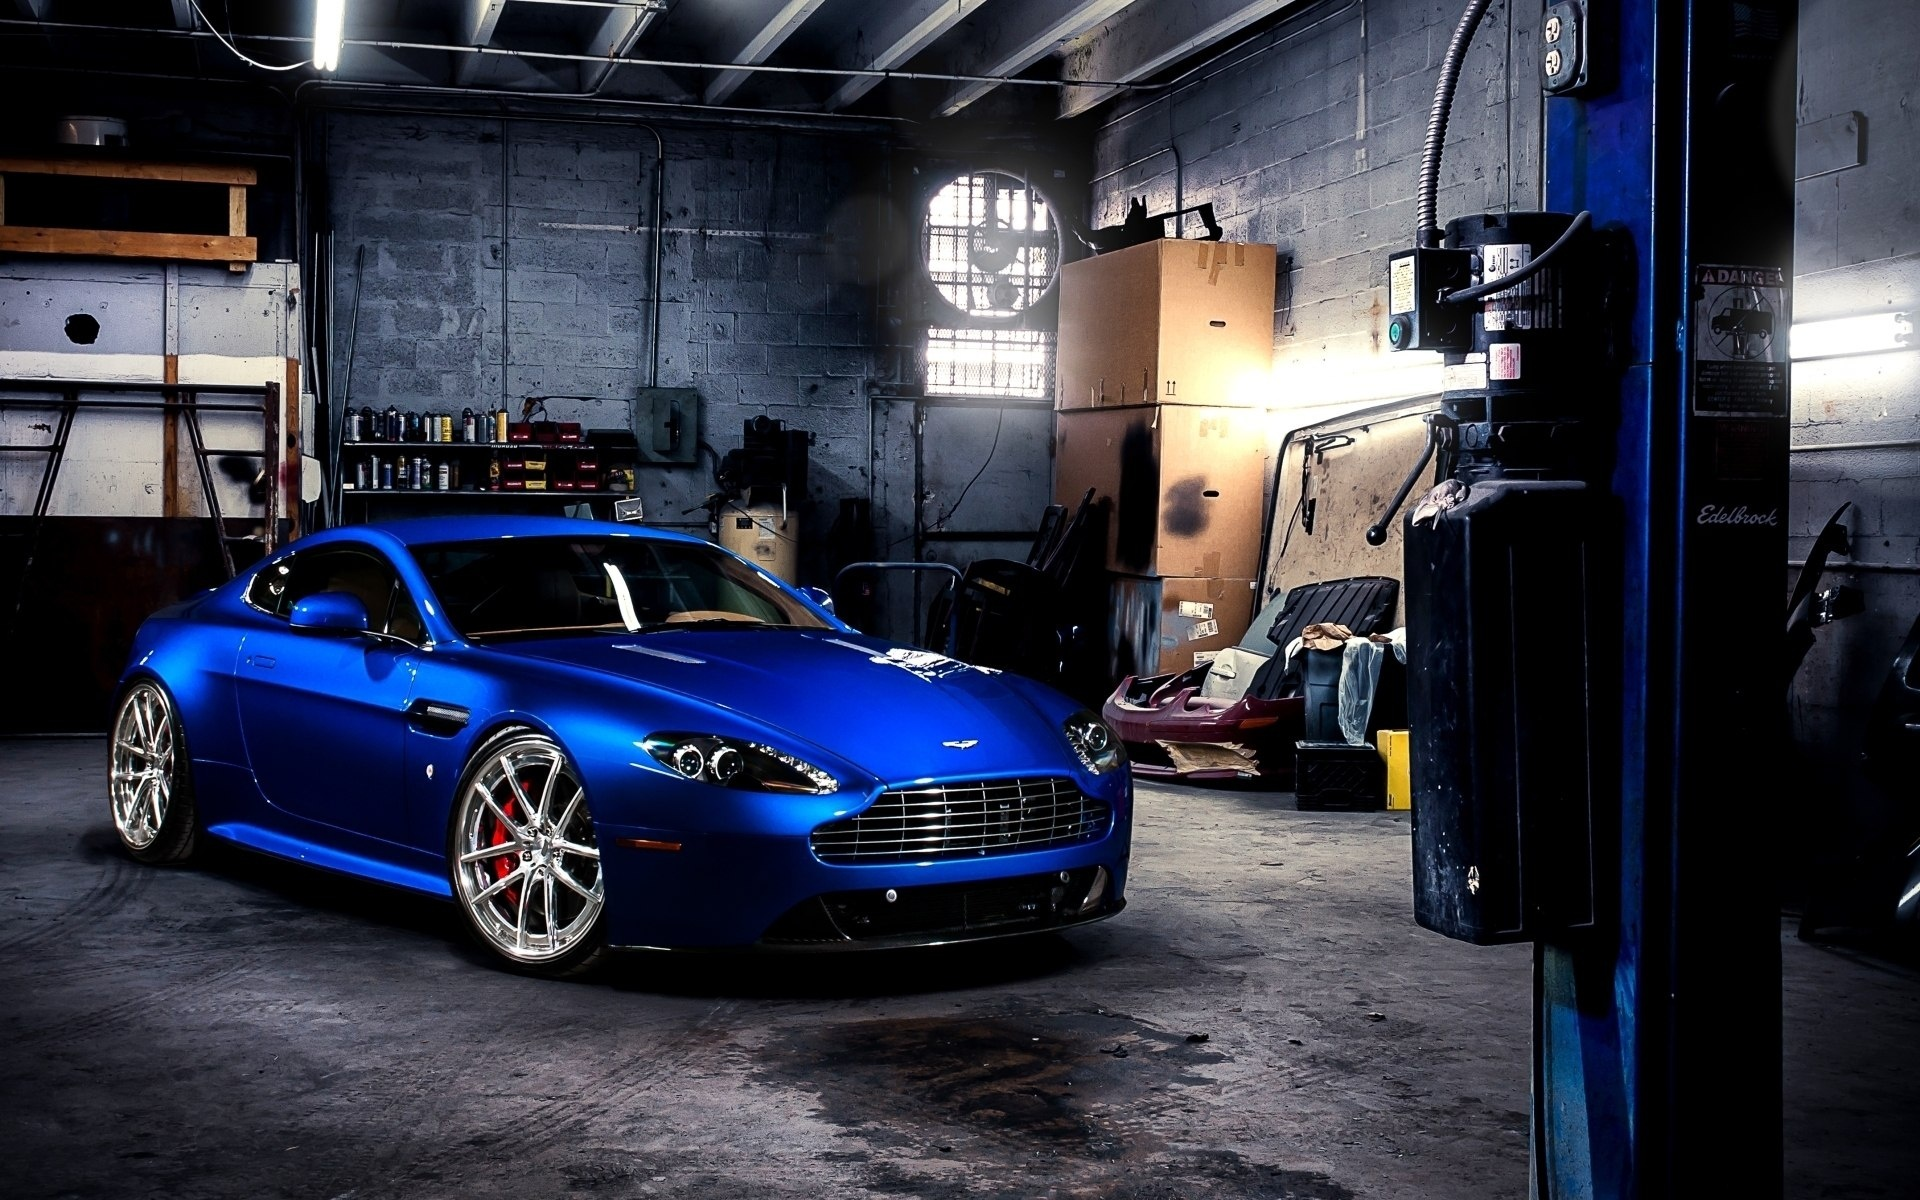 Metallic Blue Aston Martin In Garage Hd Desktop Wallpaper